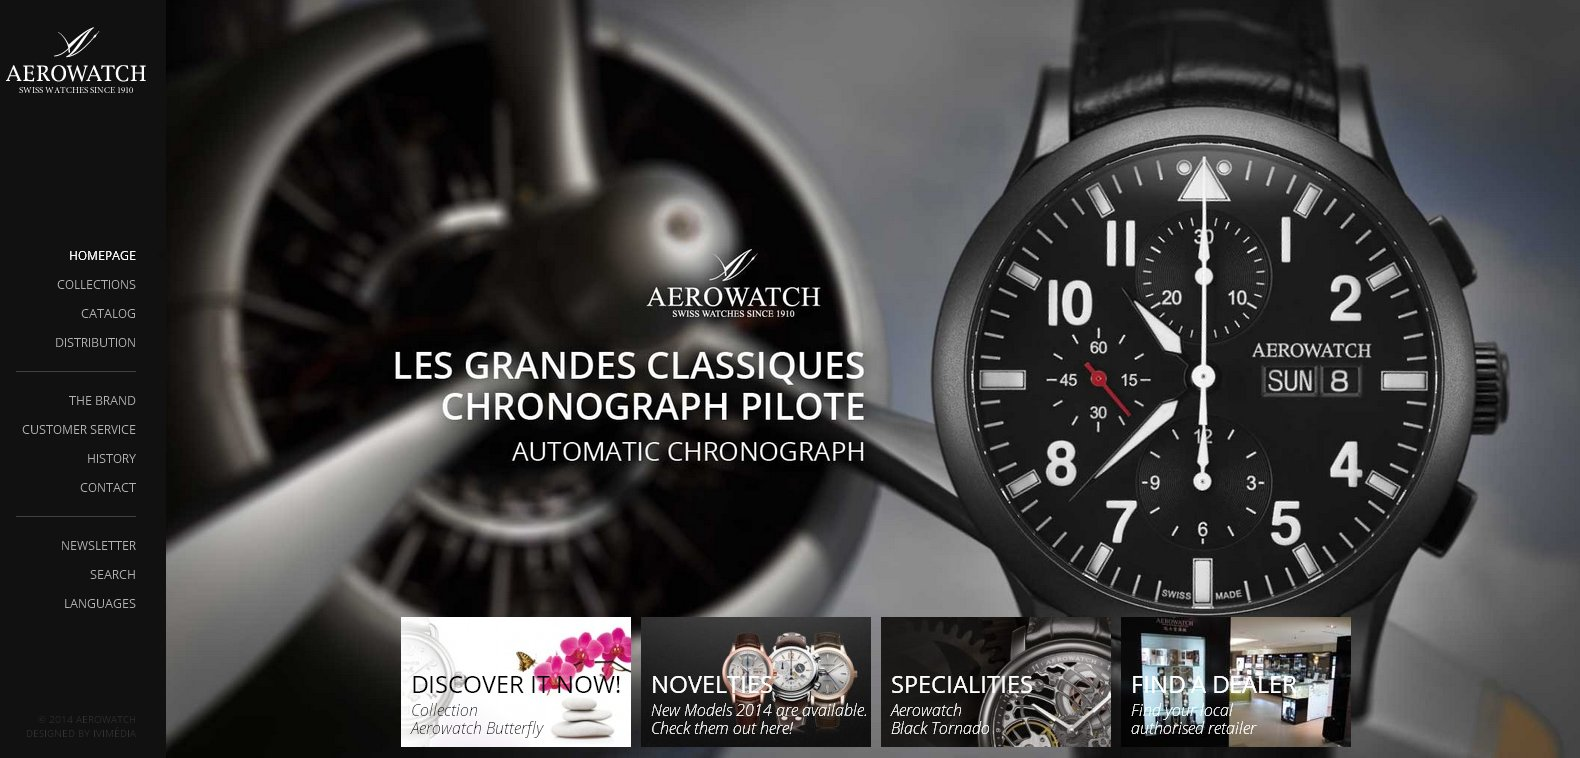 AeroWatch-Gents-Watch